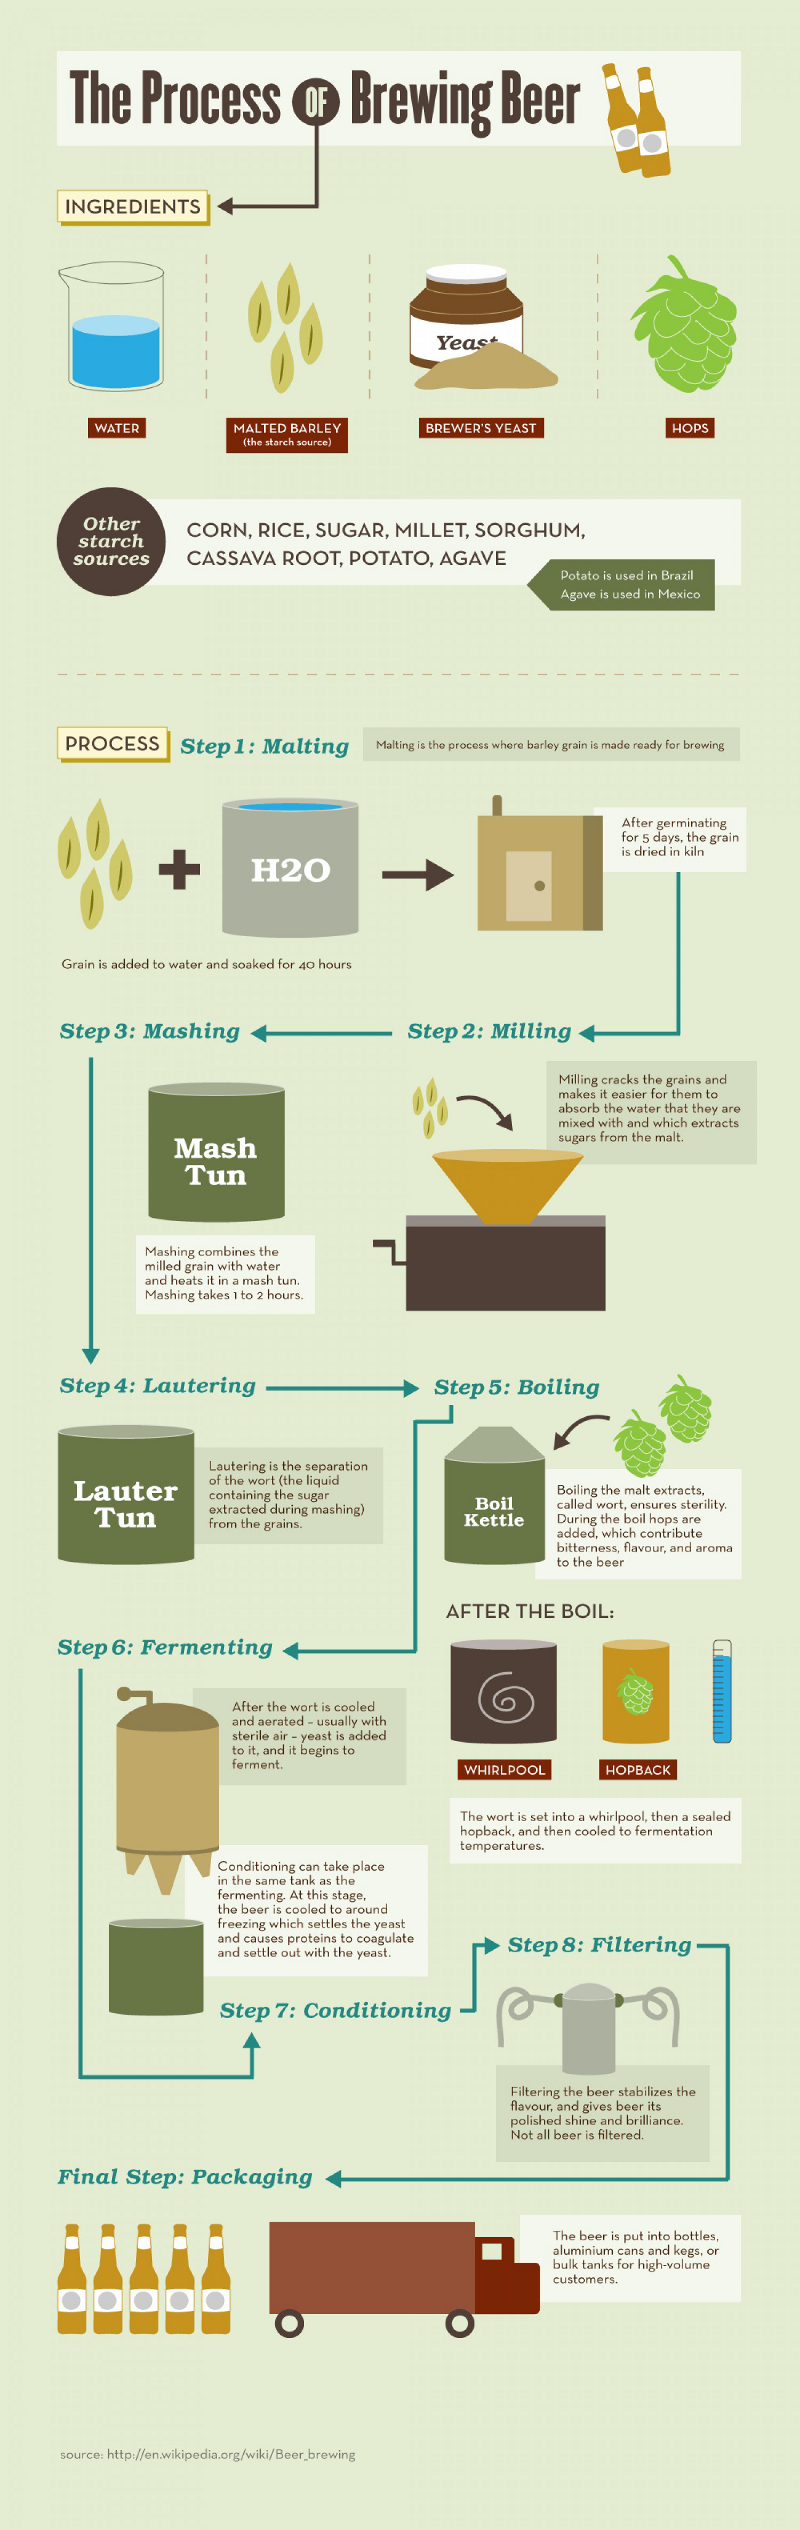 Process of Brewing Beer